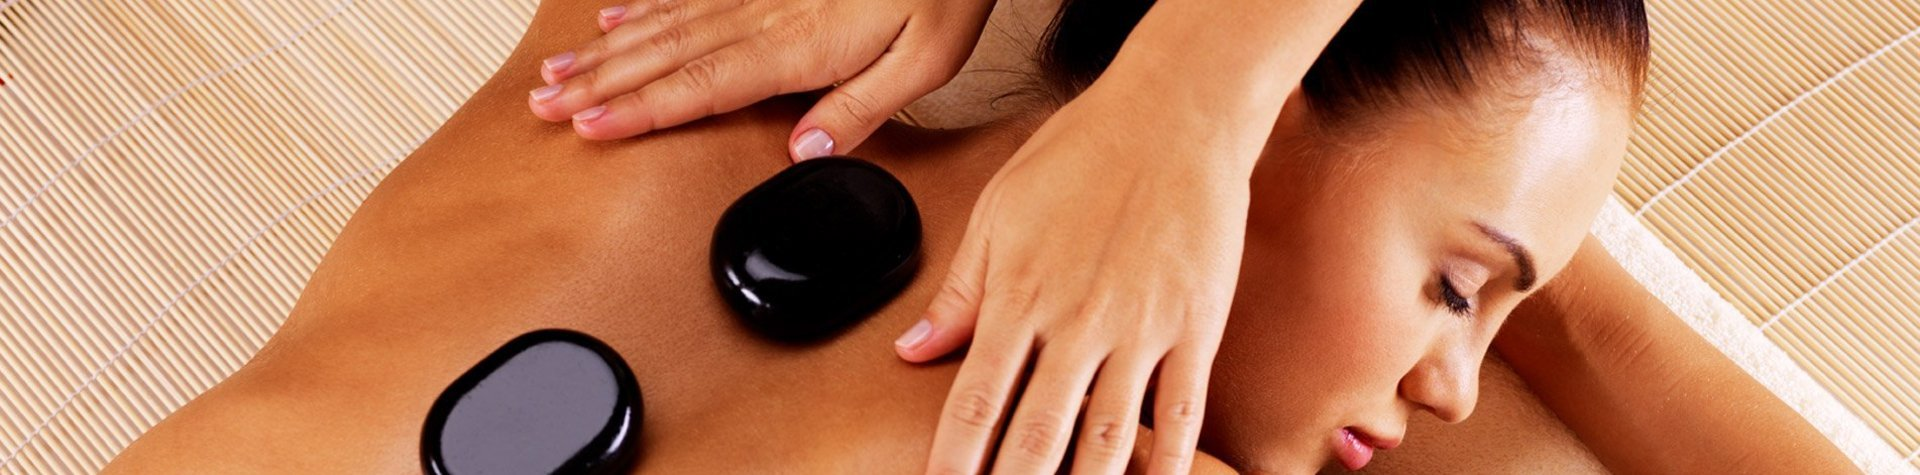 girl going for massage with hot stones